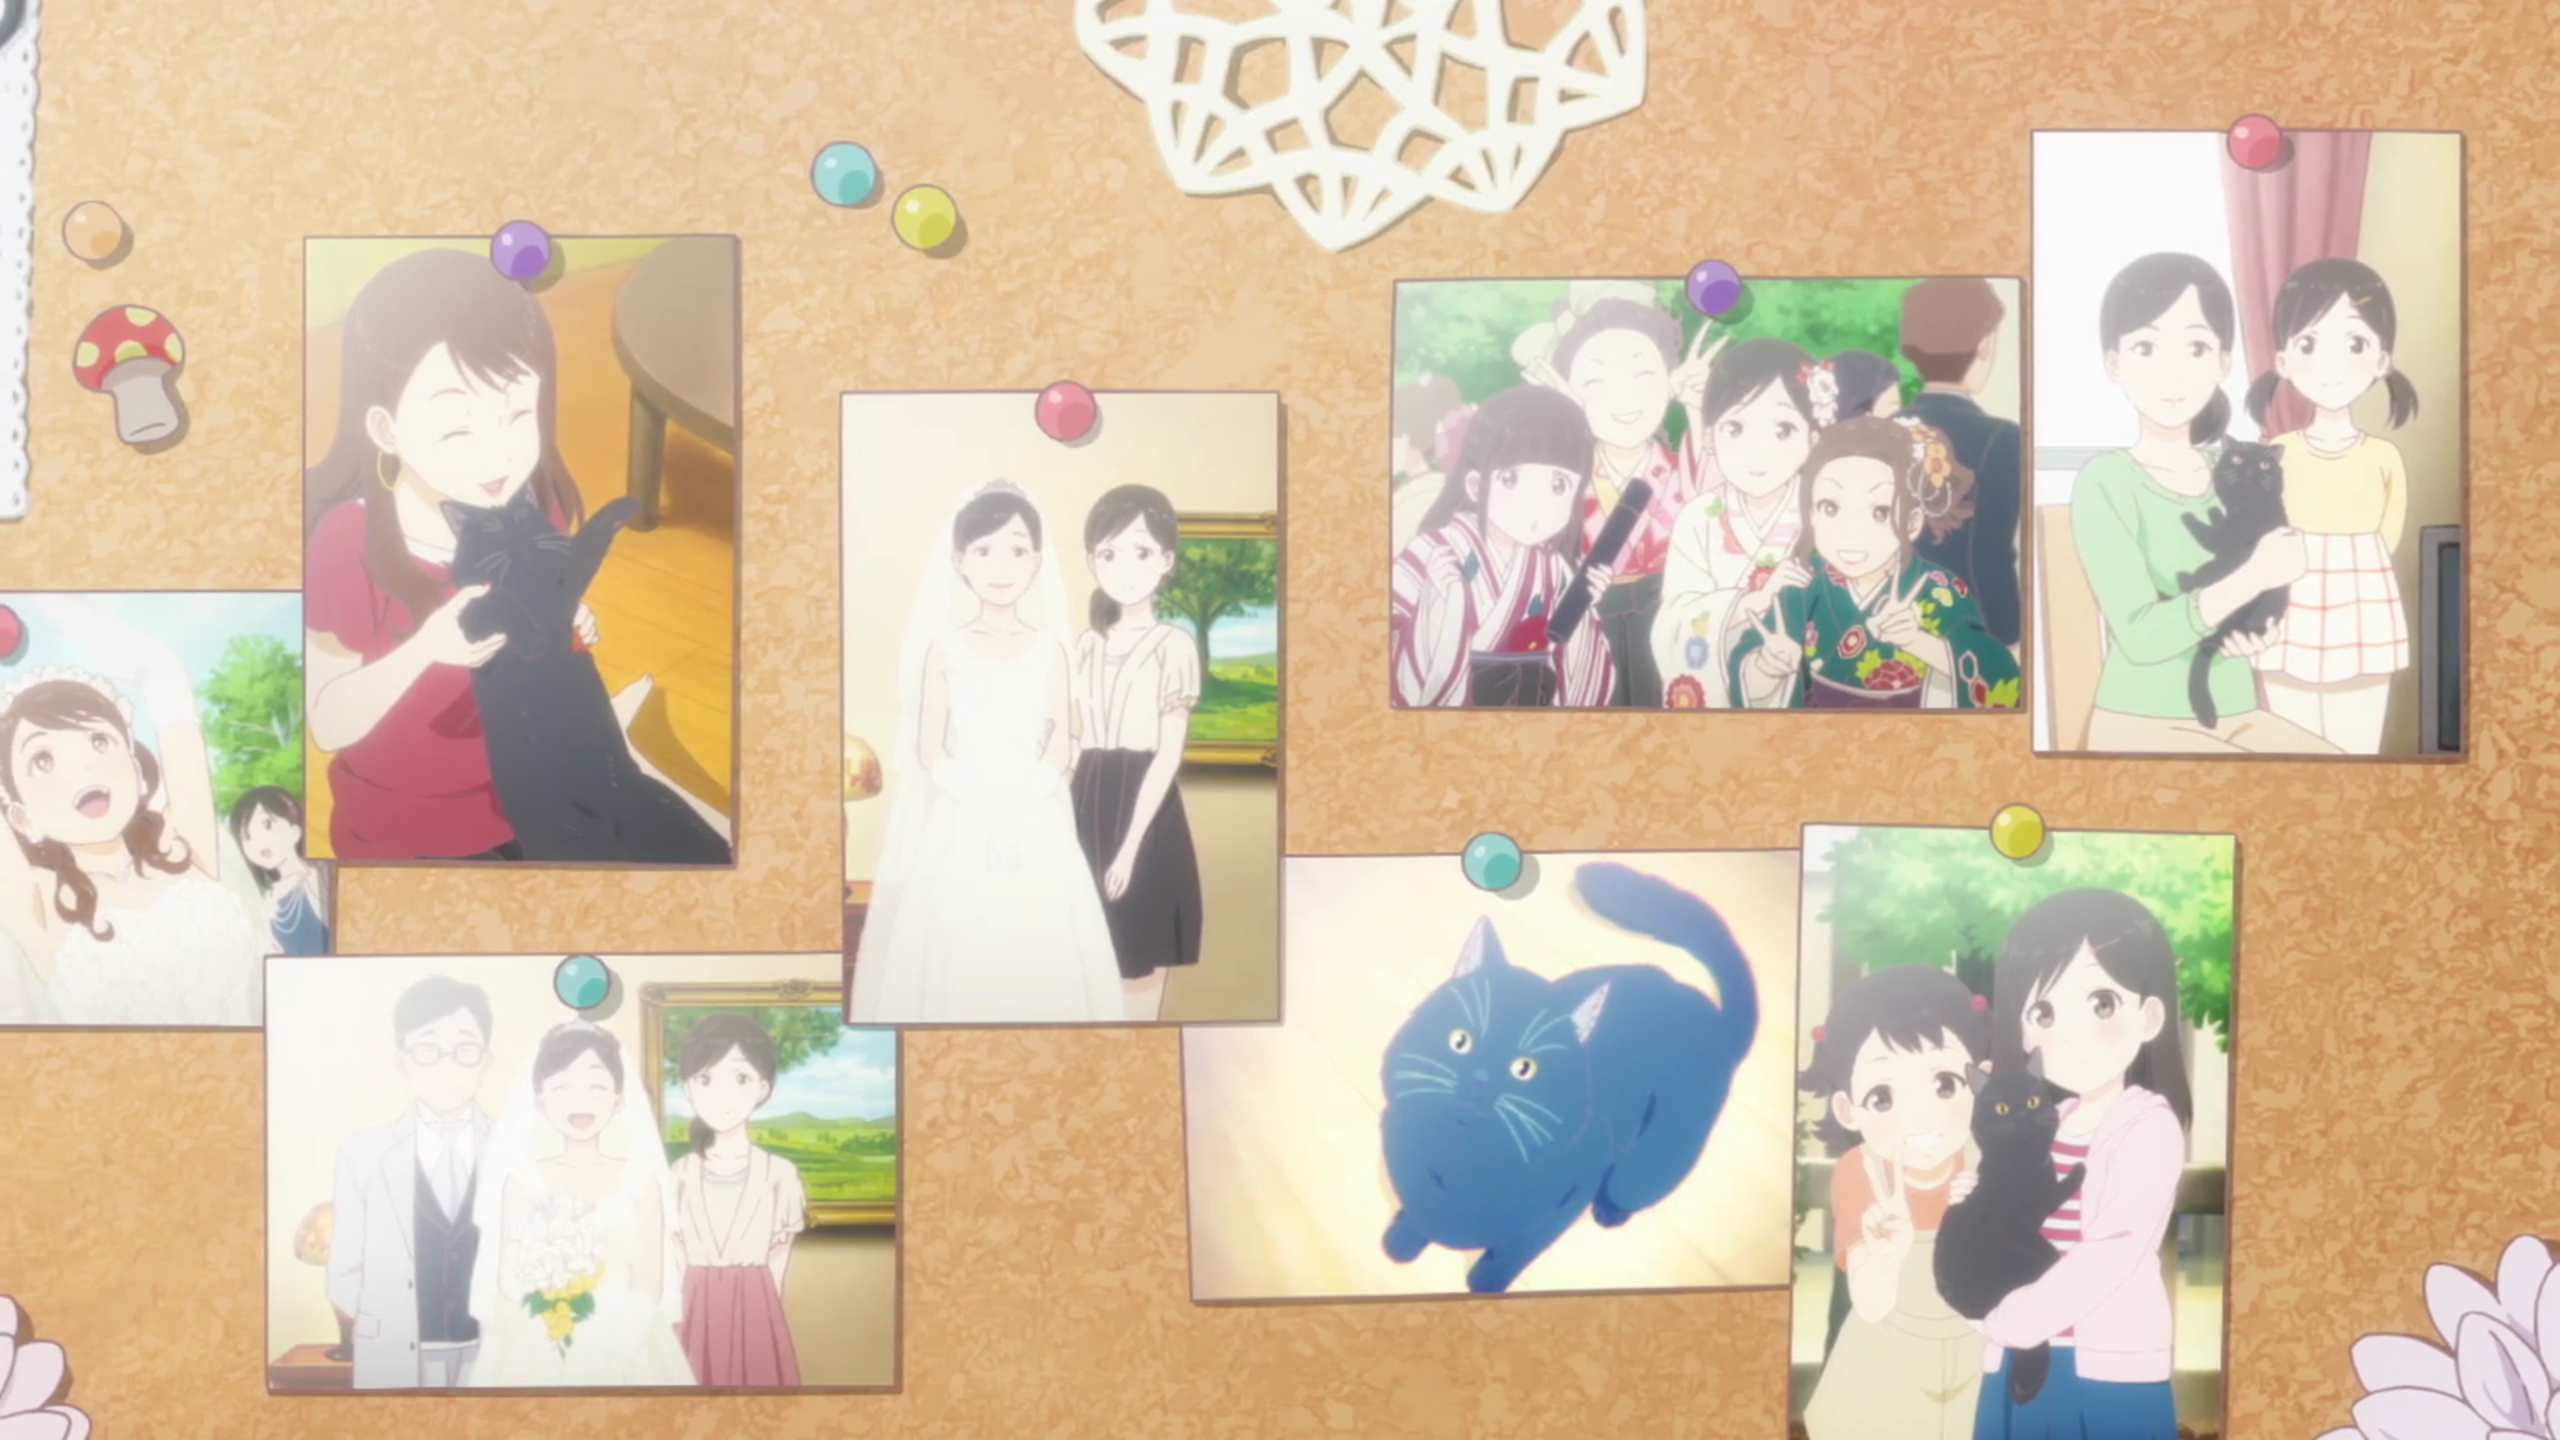 A cork notice board with photos pinned to it of weddings, happy groups of friends and family, and Daru the cat